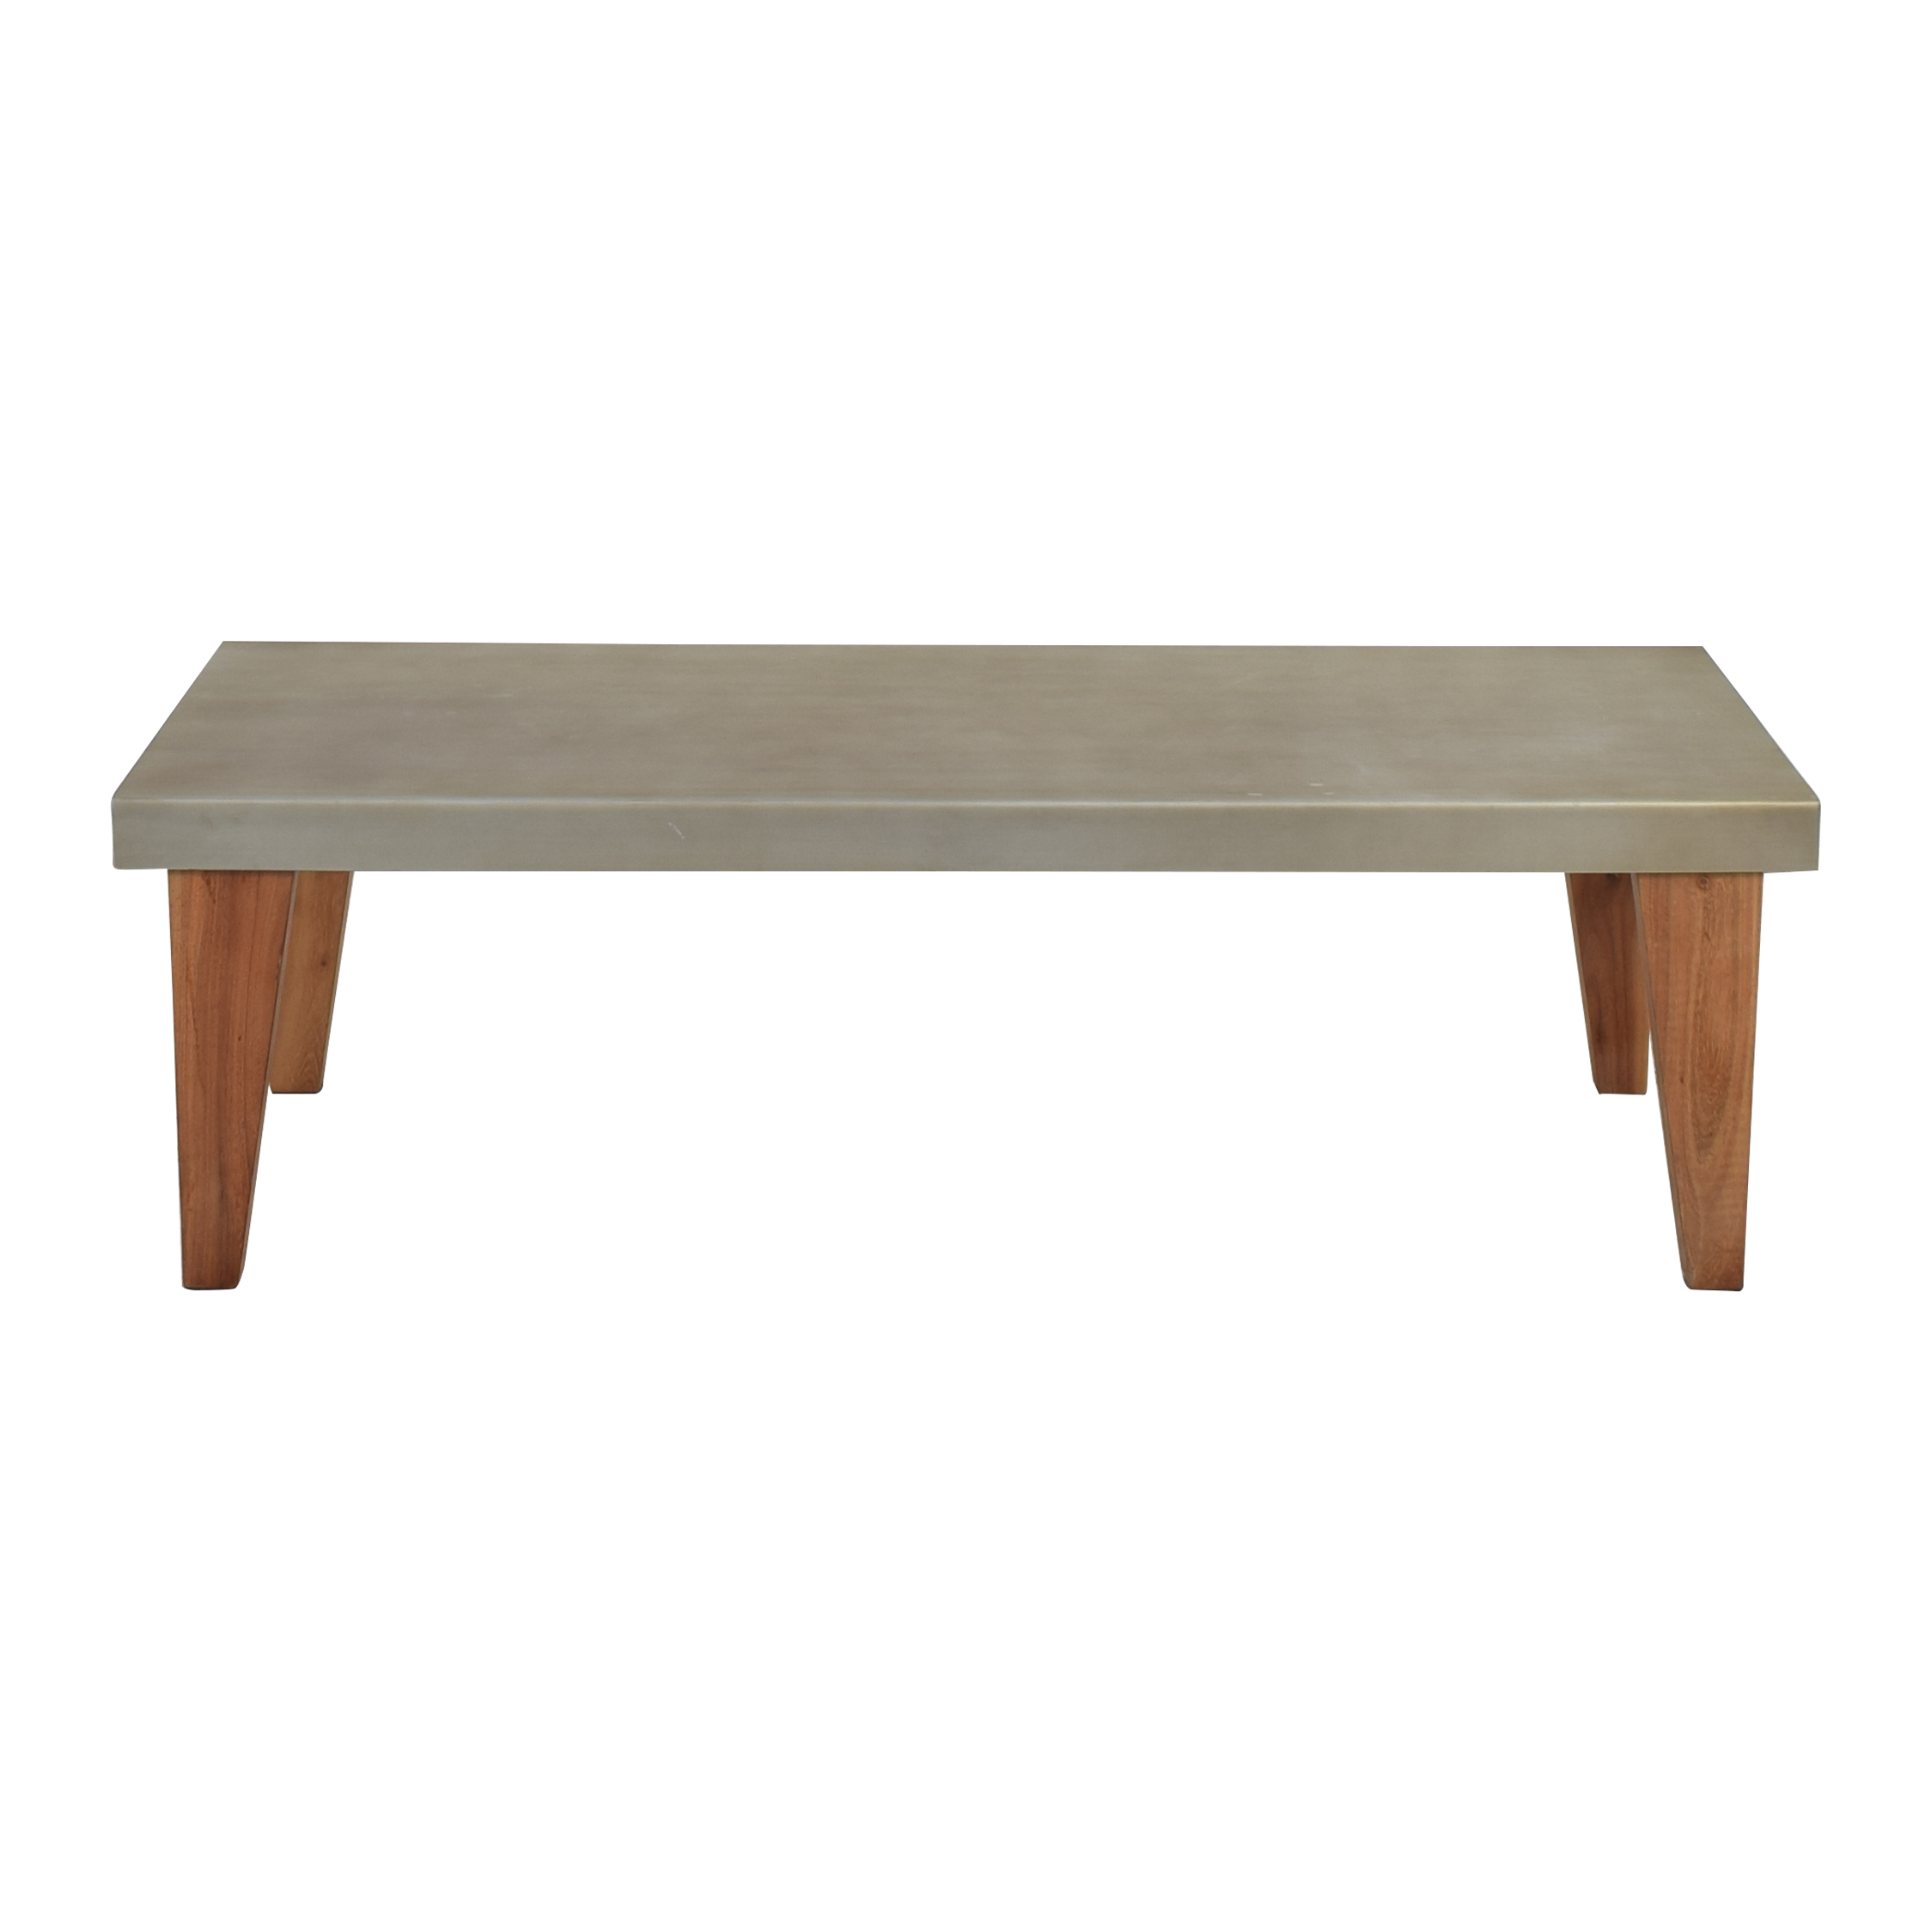 buy CB2 CB2 Industrial Style Coffee Table online